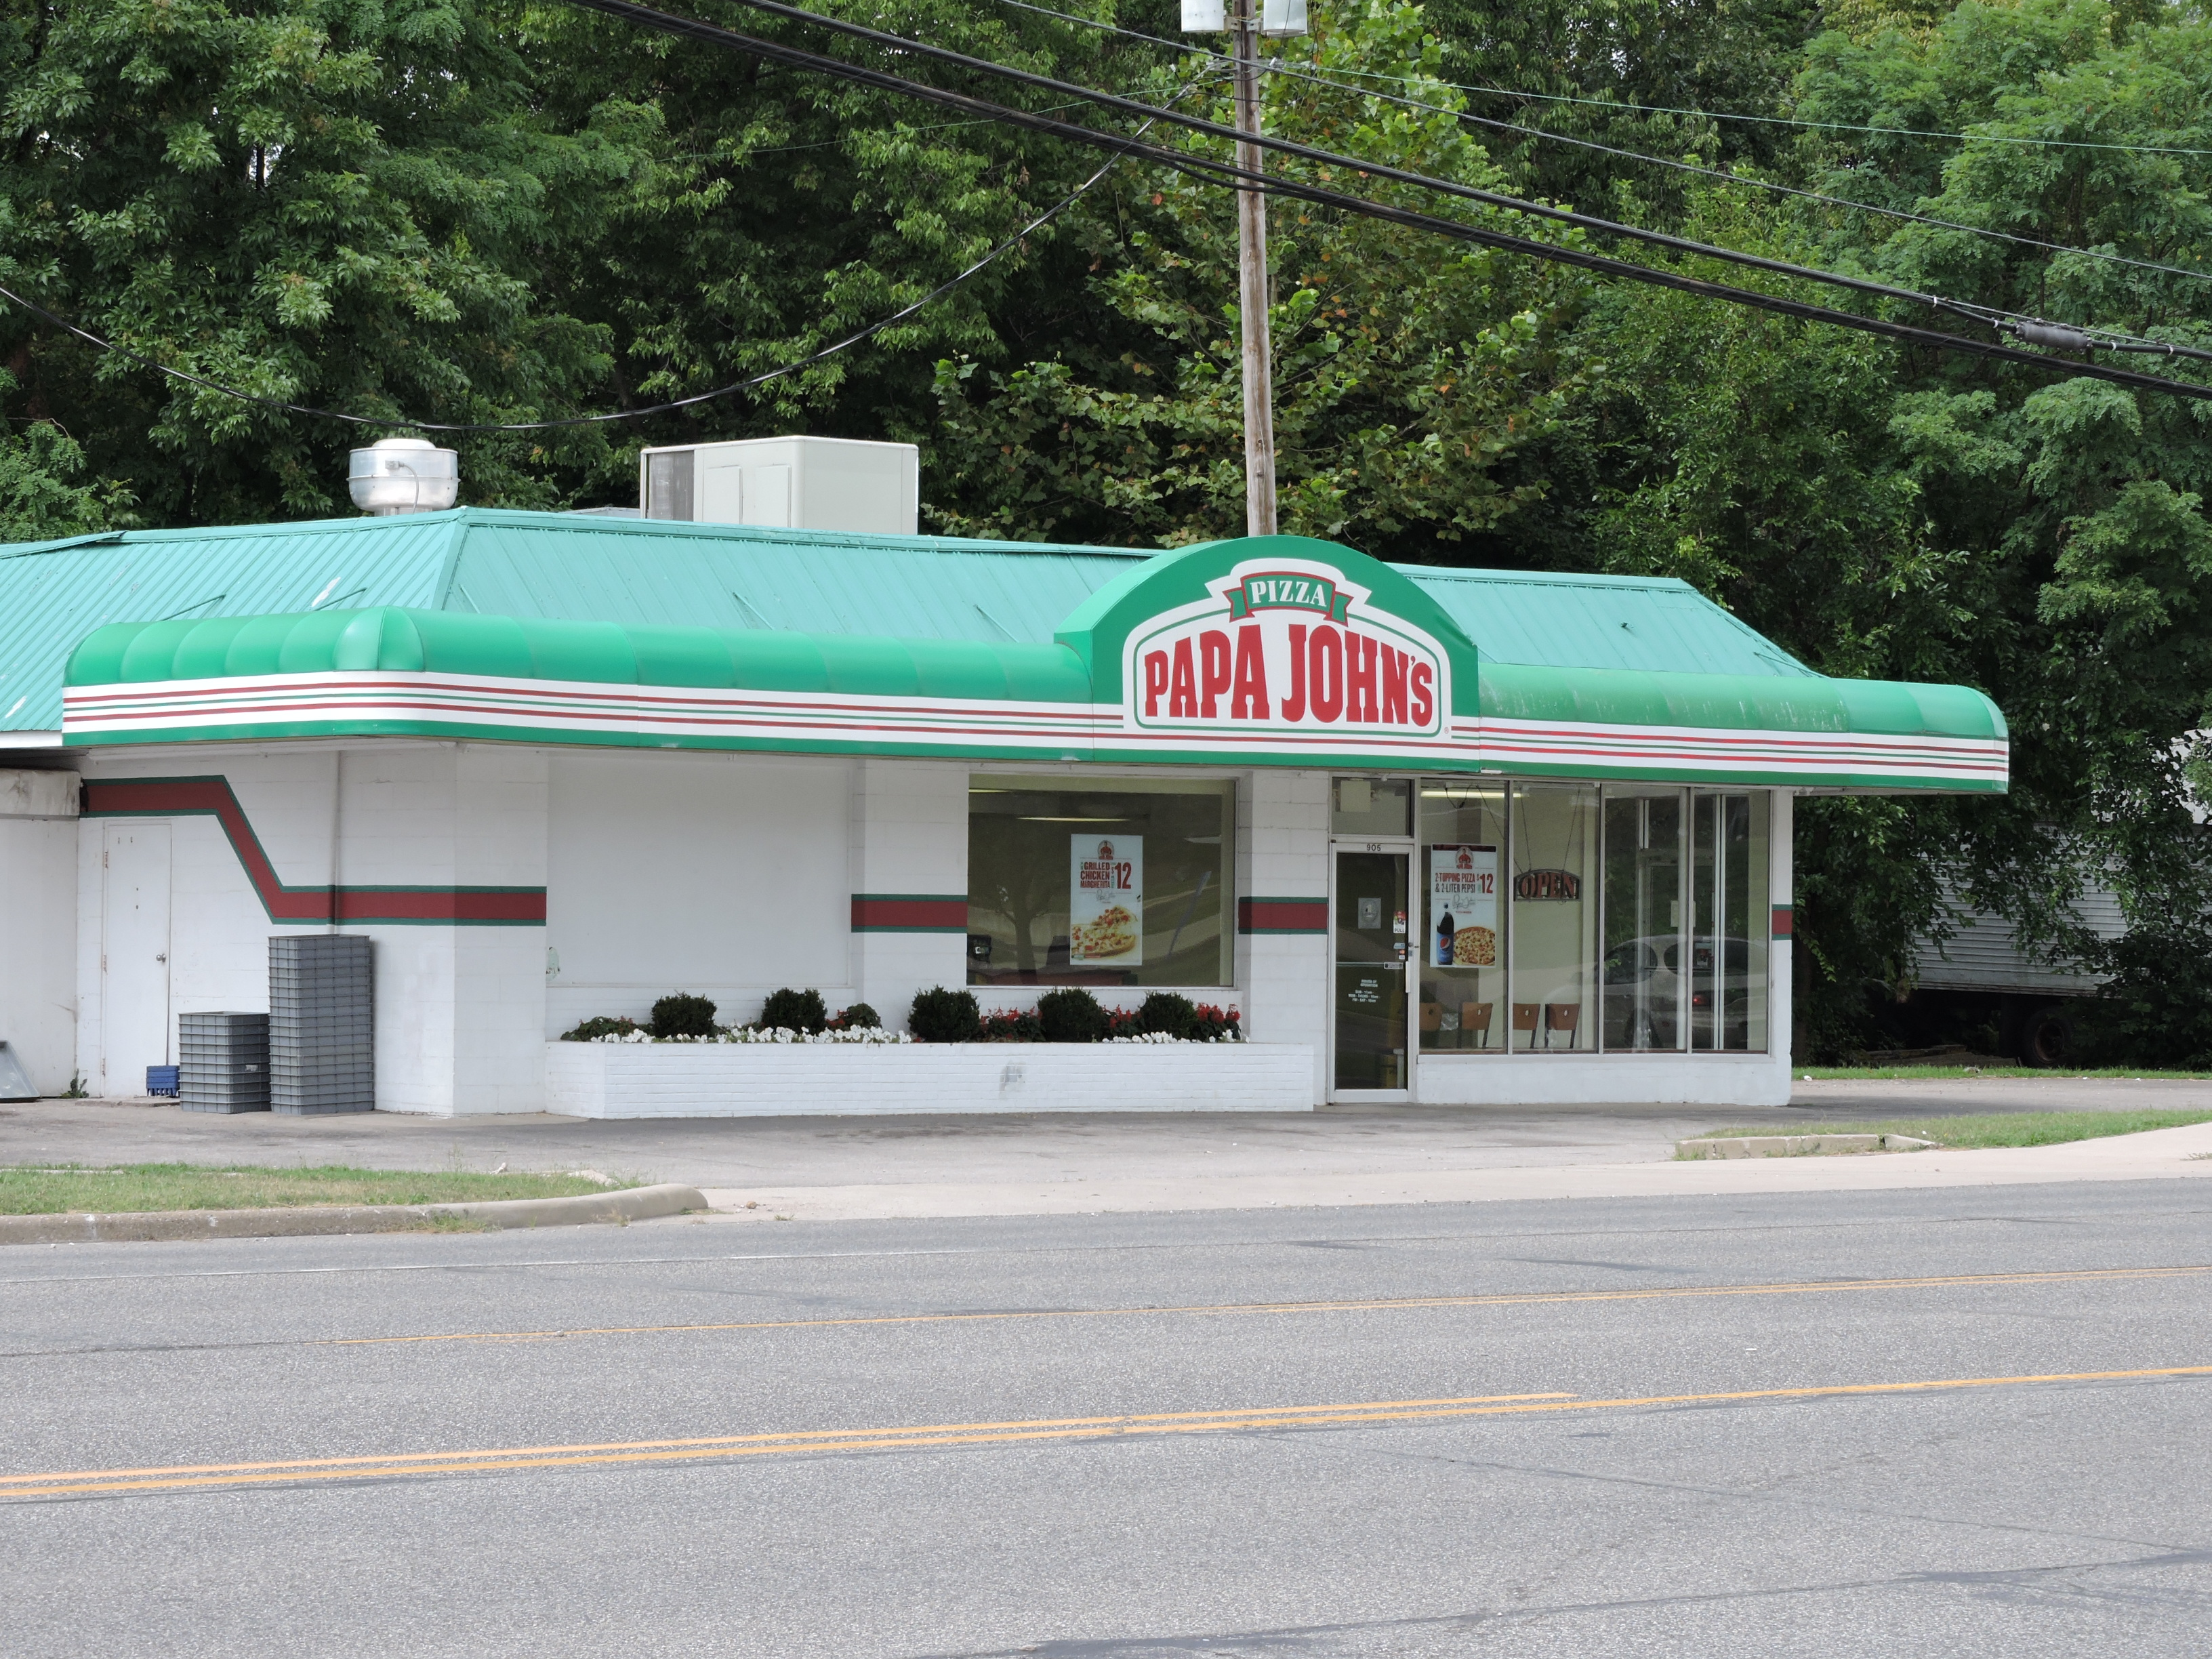 Papa John's pizza restaurant real estate investment crowd funding